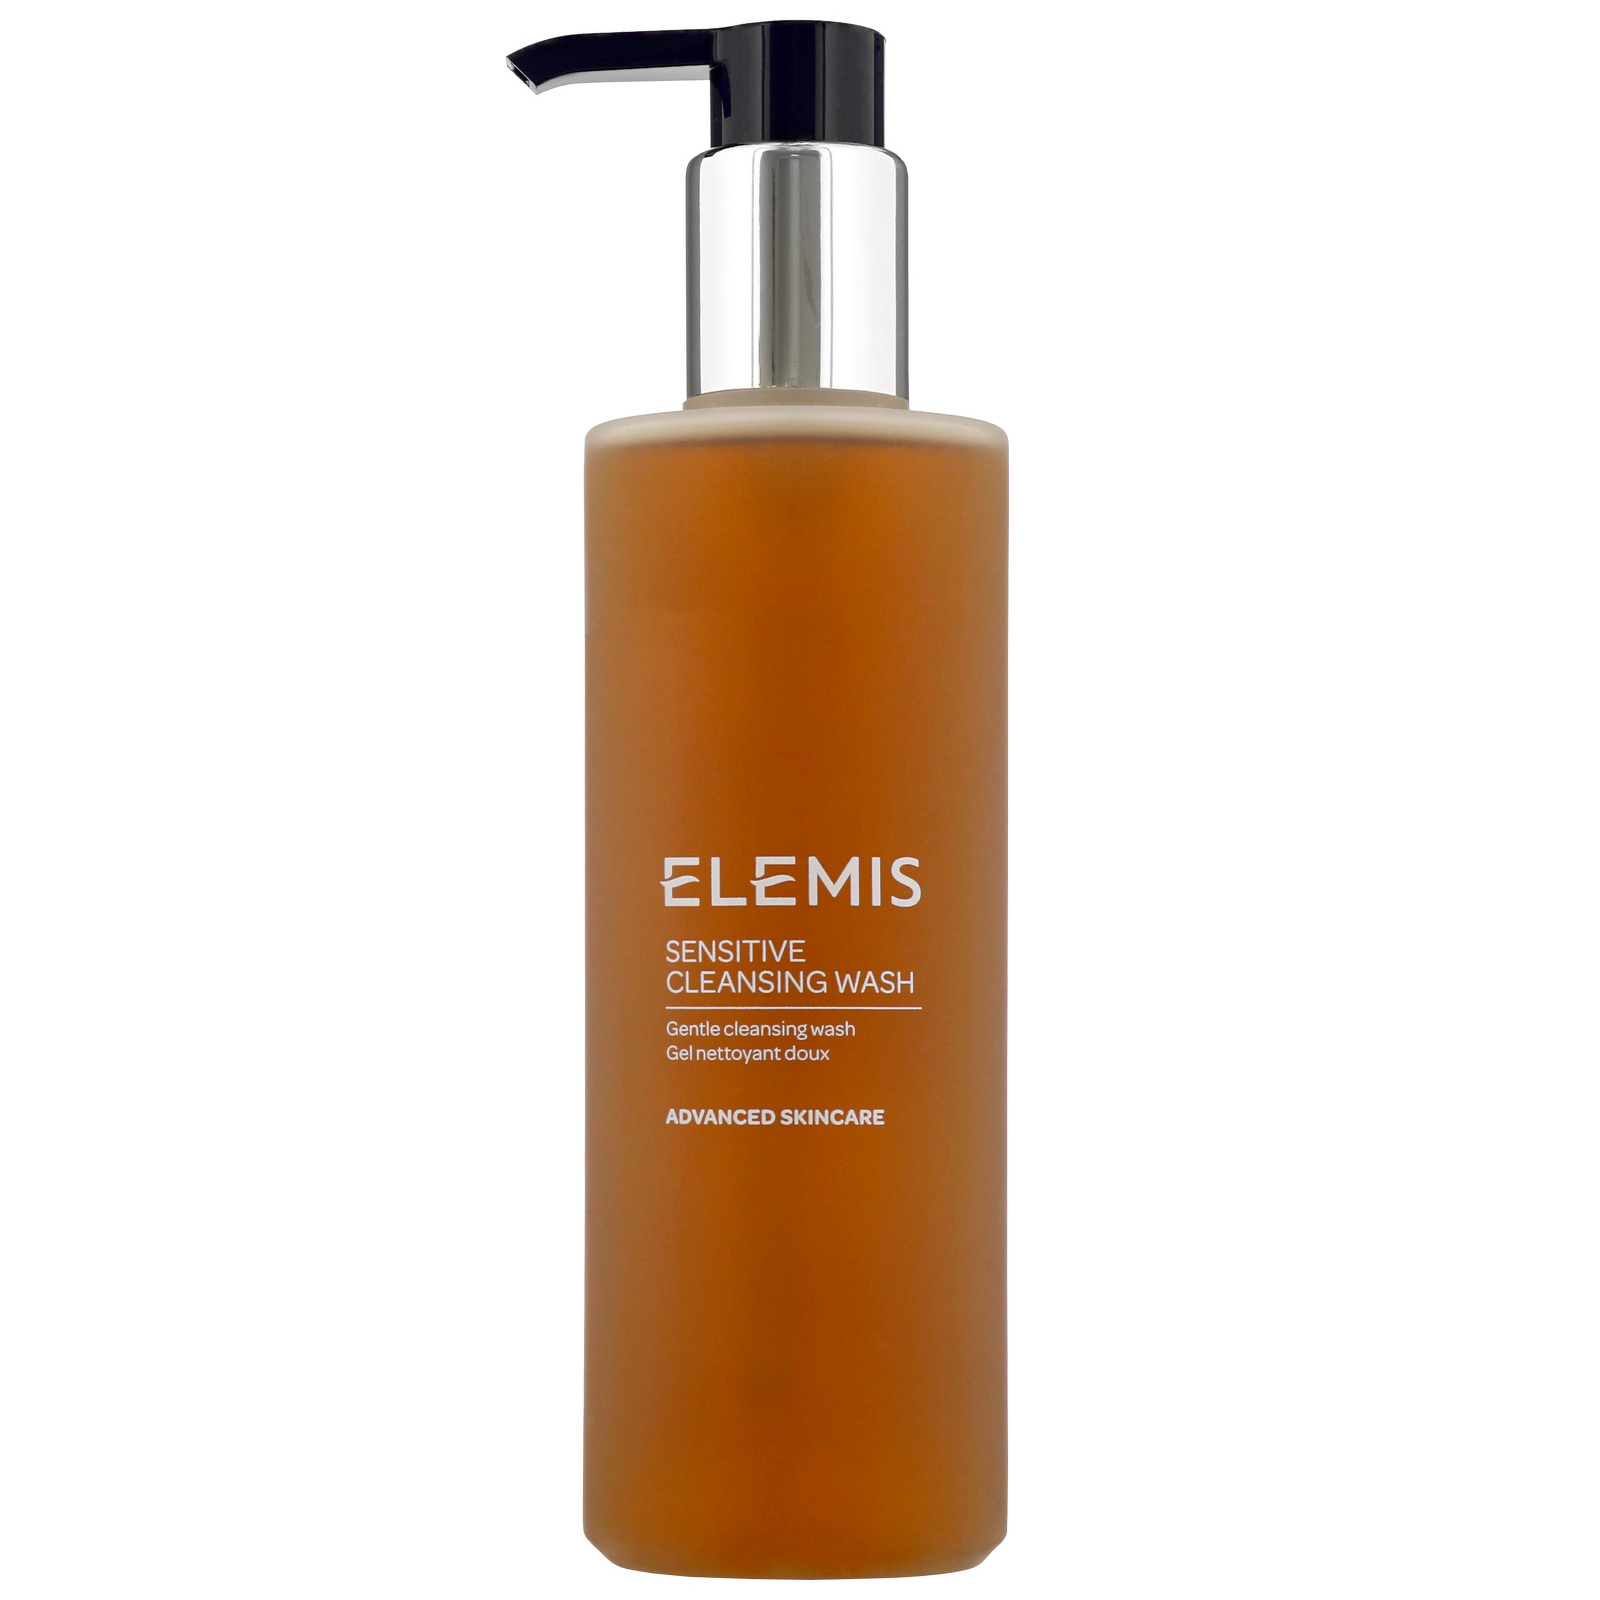 Elemis Advanced Skincare Sensitive Cleansing Wash 200ml / 6.7 fl.oz.